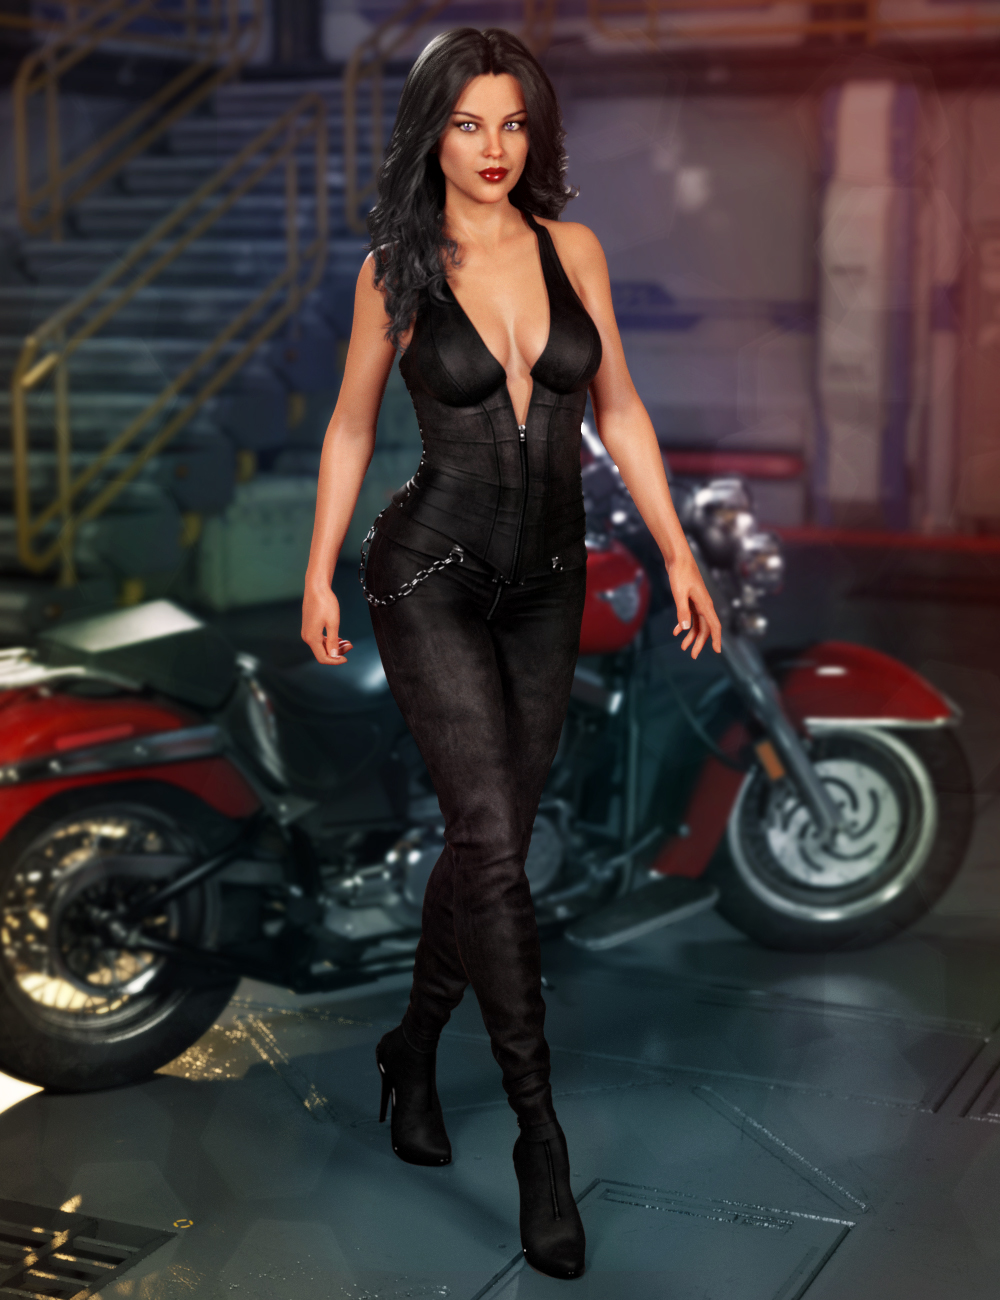 Assassin Angel Outfit for Genesis 8 Females by: 4blueyes, 3D Models by Daz 3D